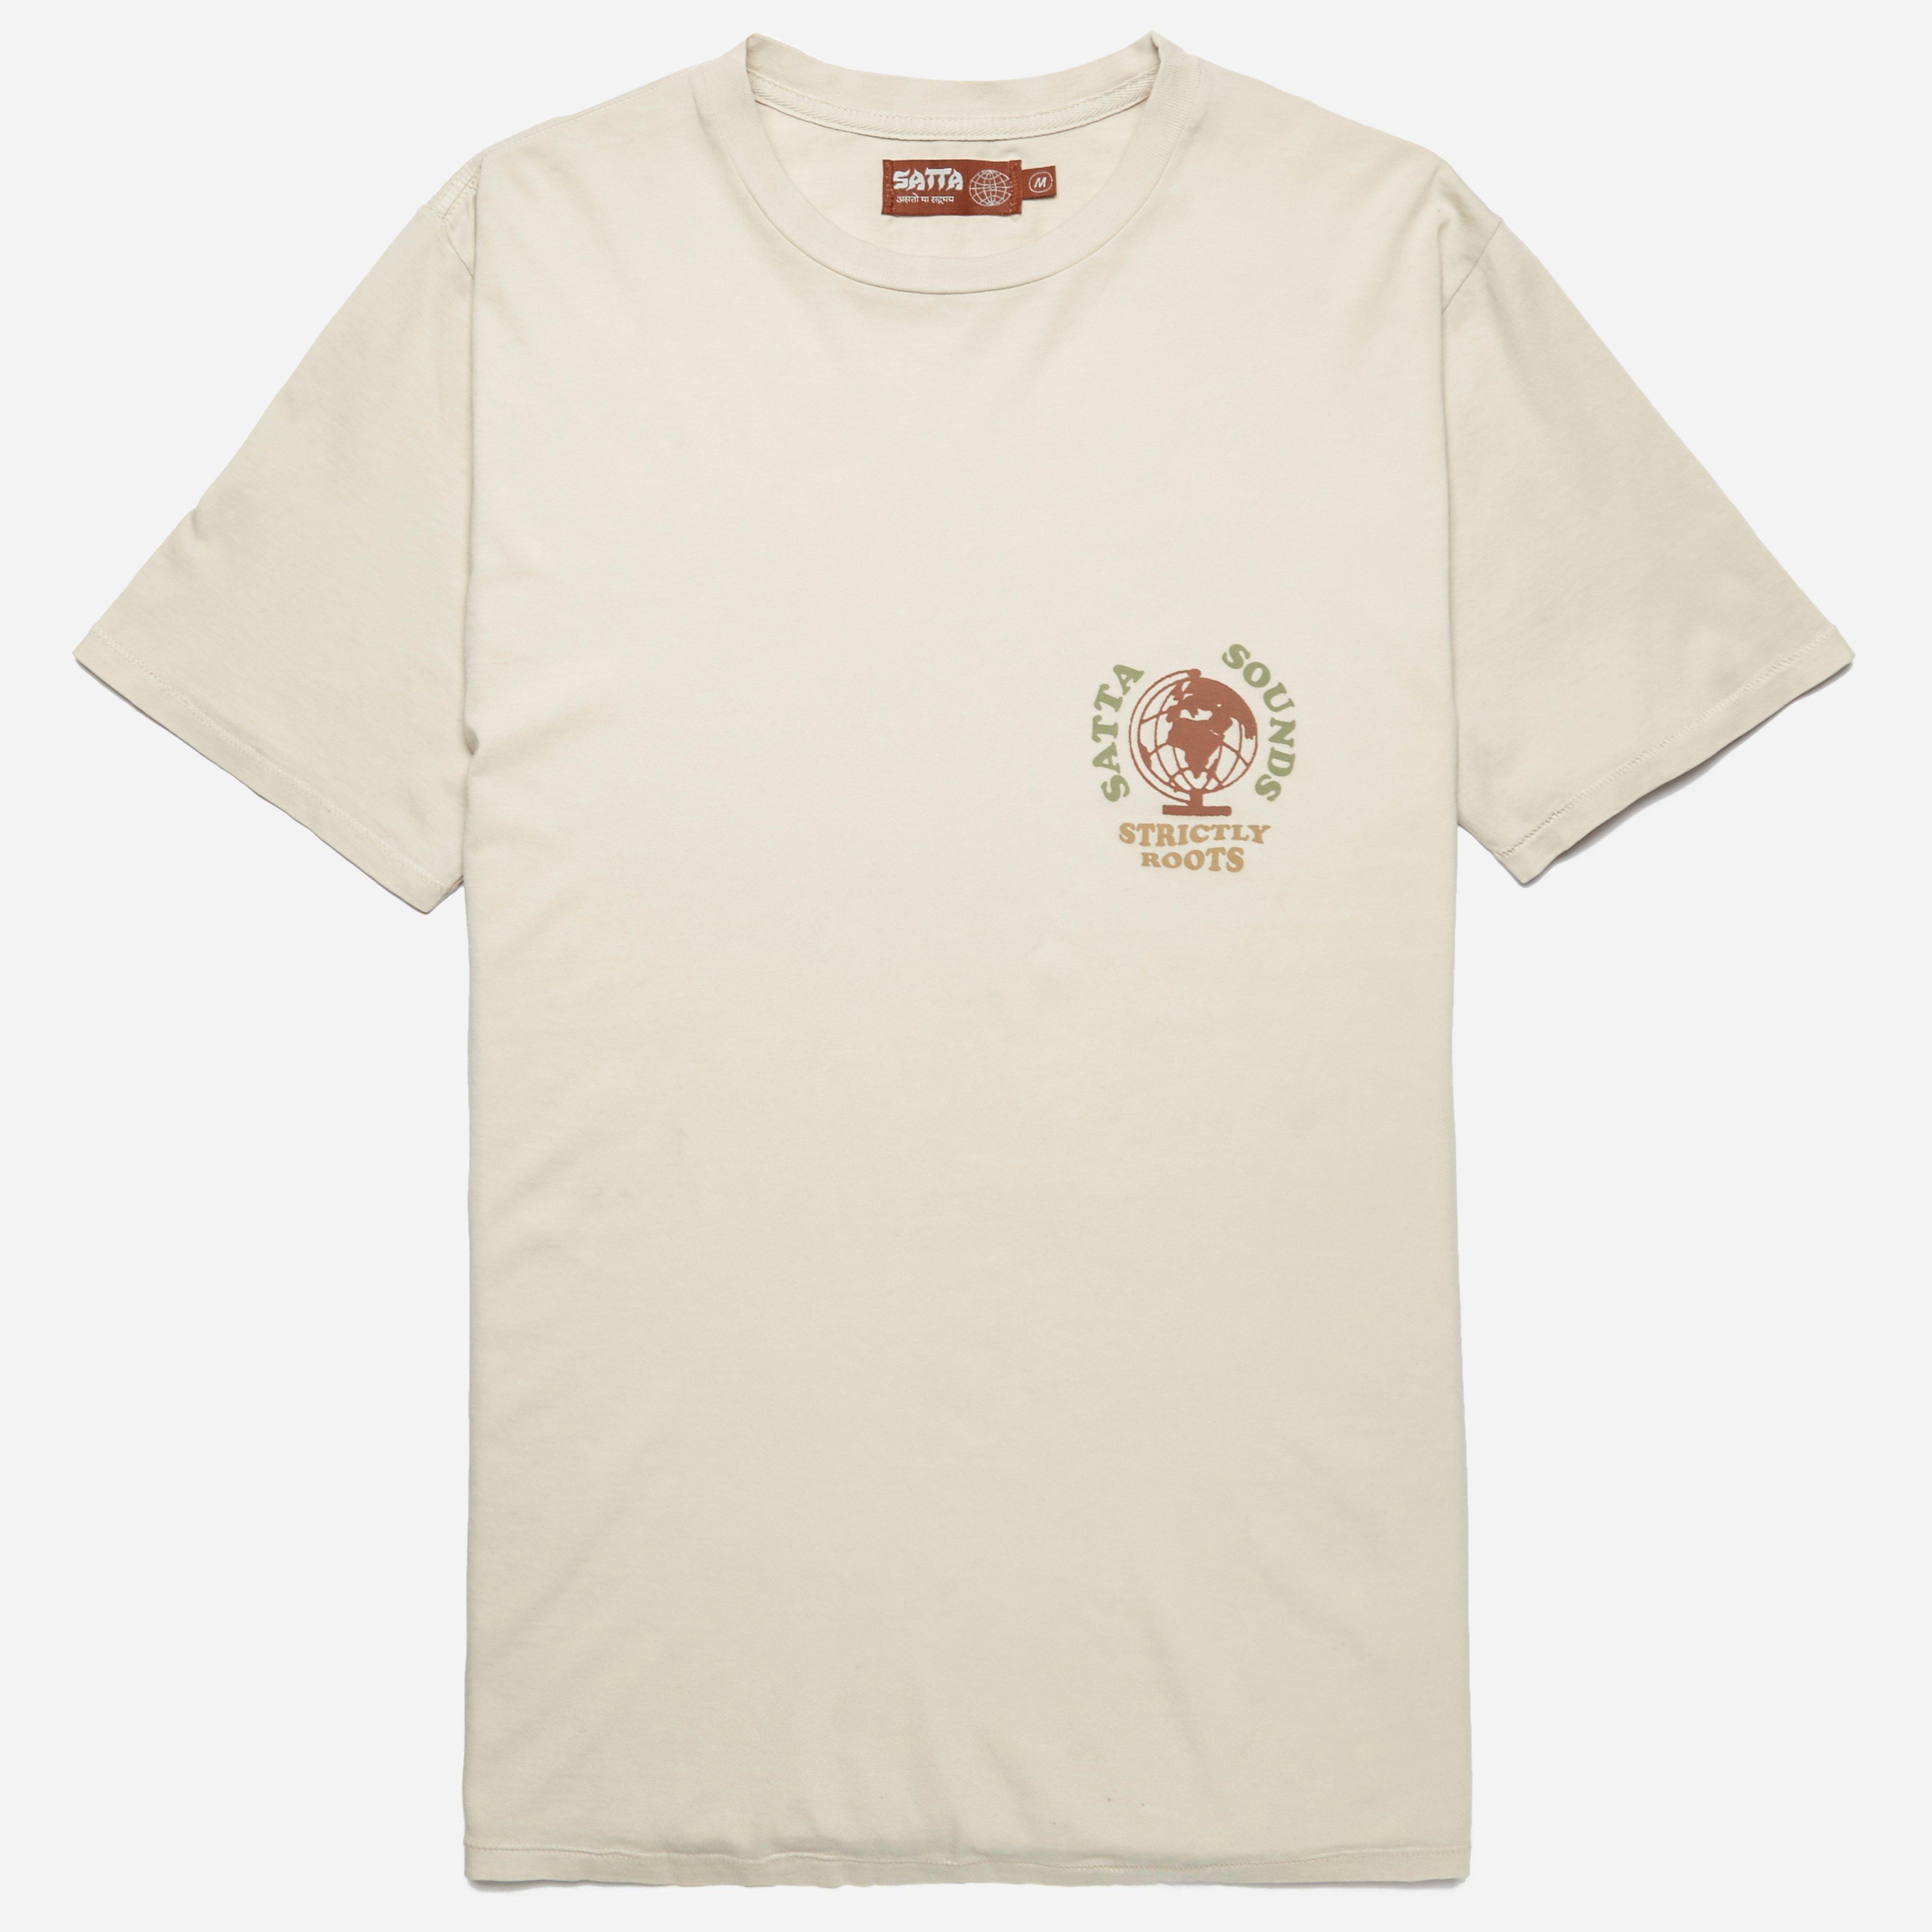 Satta Strictly Roots T-shirt